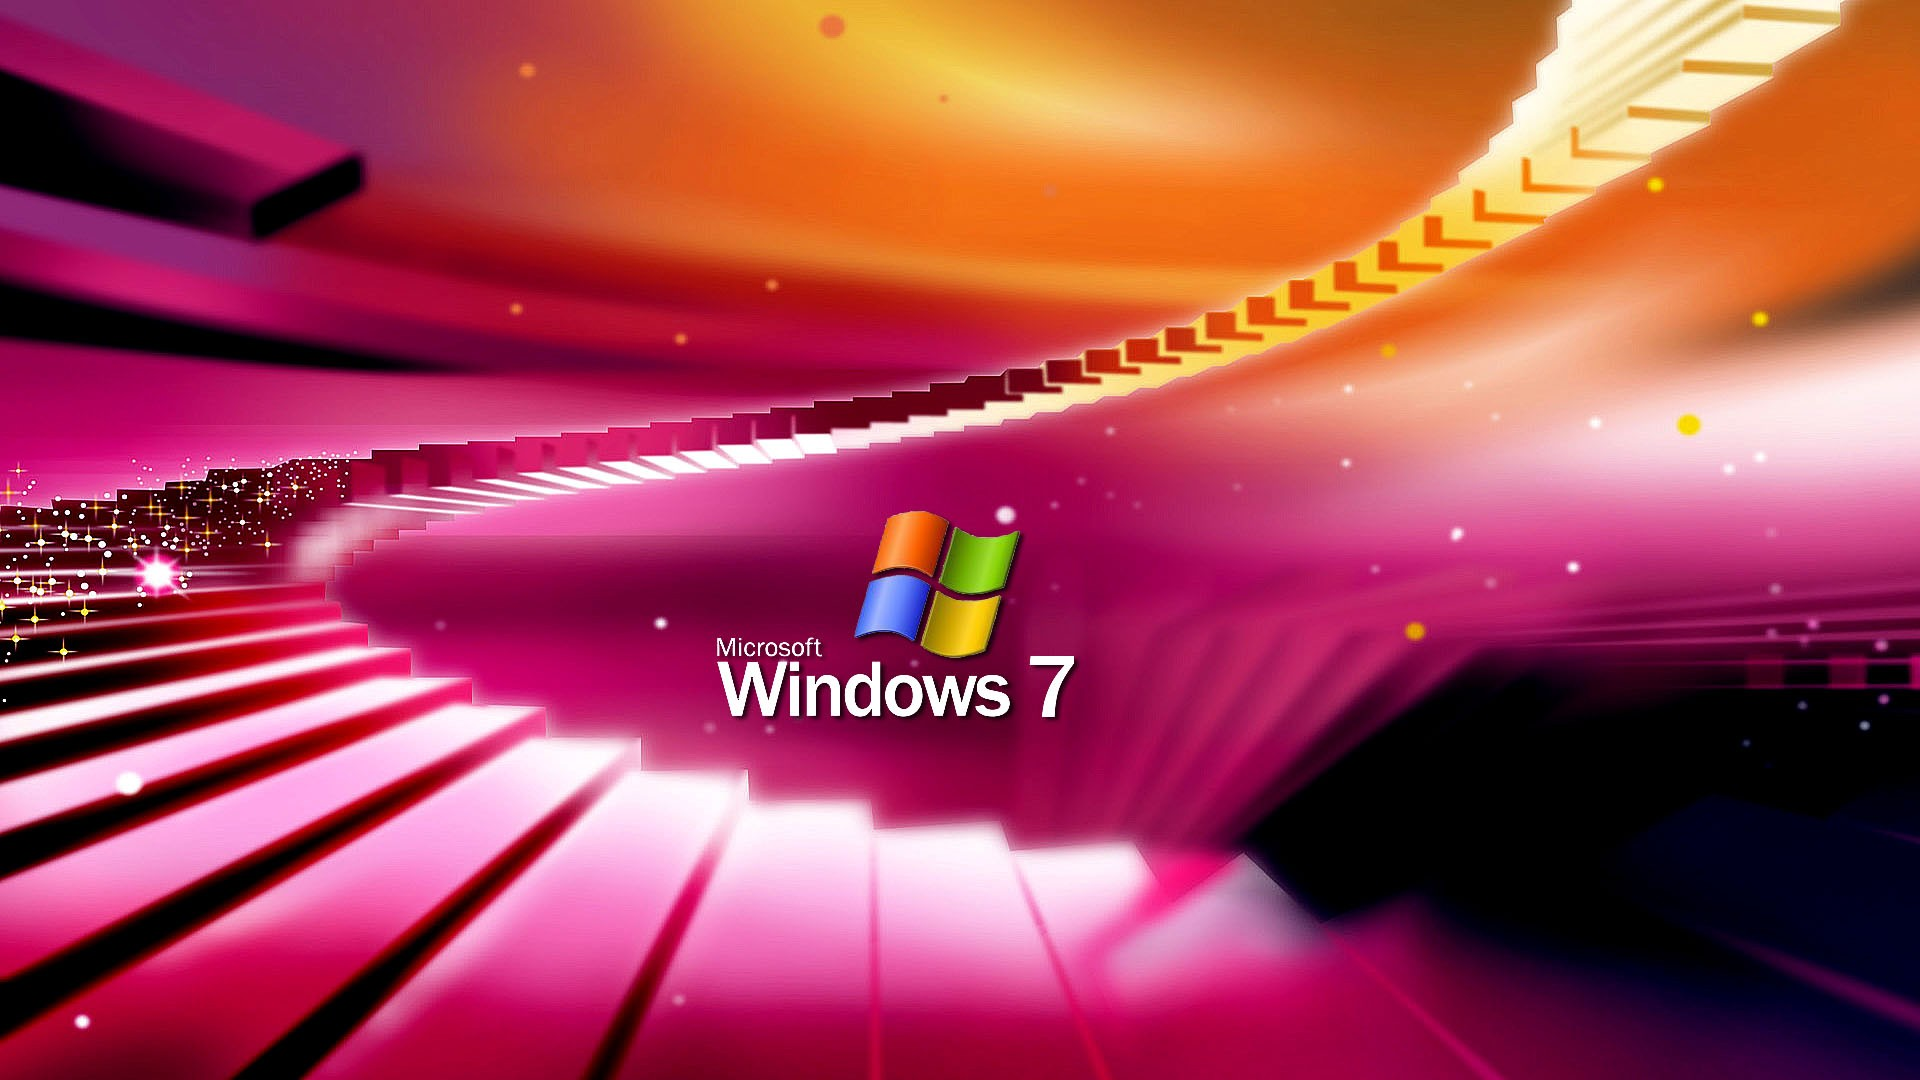 1920x1080 windows 7 wallpaper: 34+ Desktop Backgrounds For Windows 7 ·① Download Free